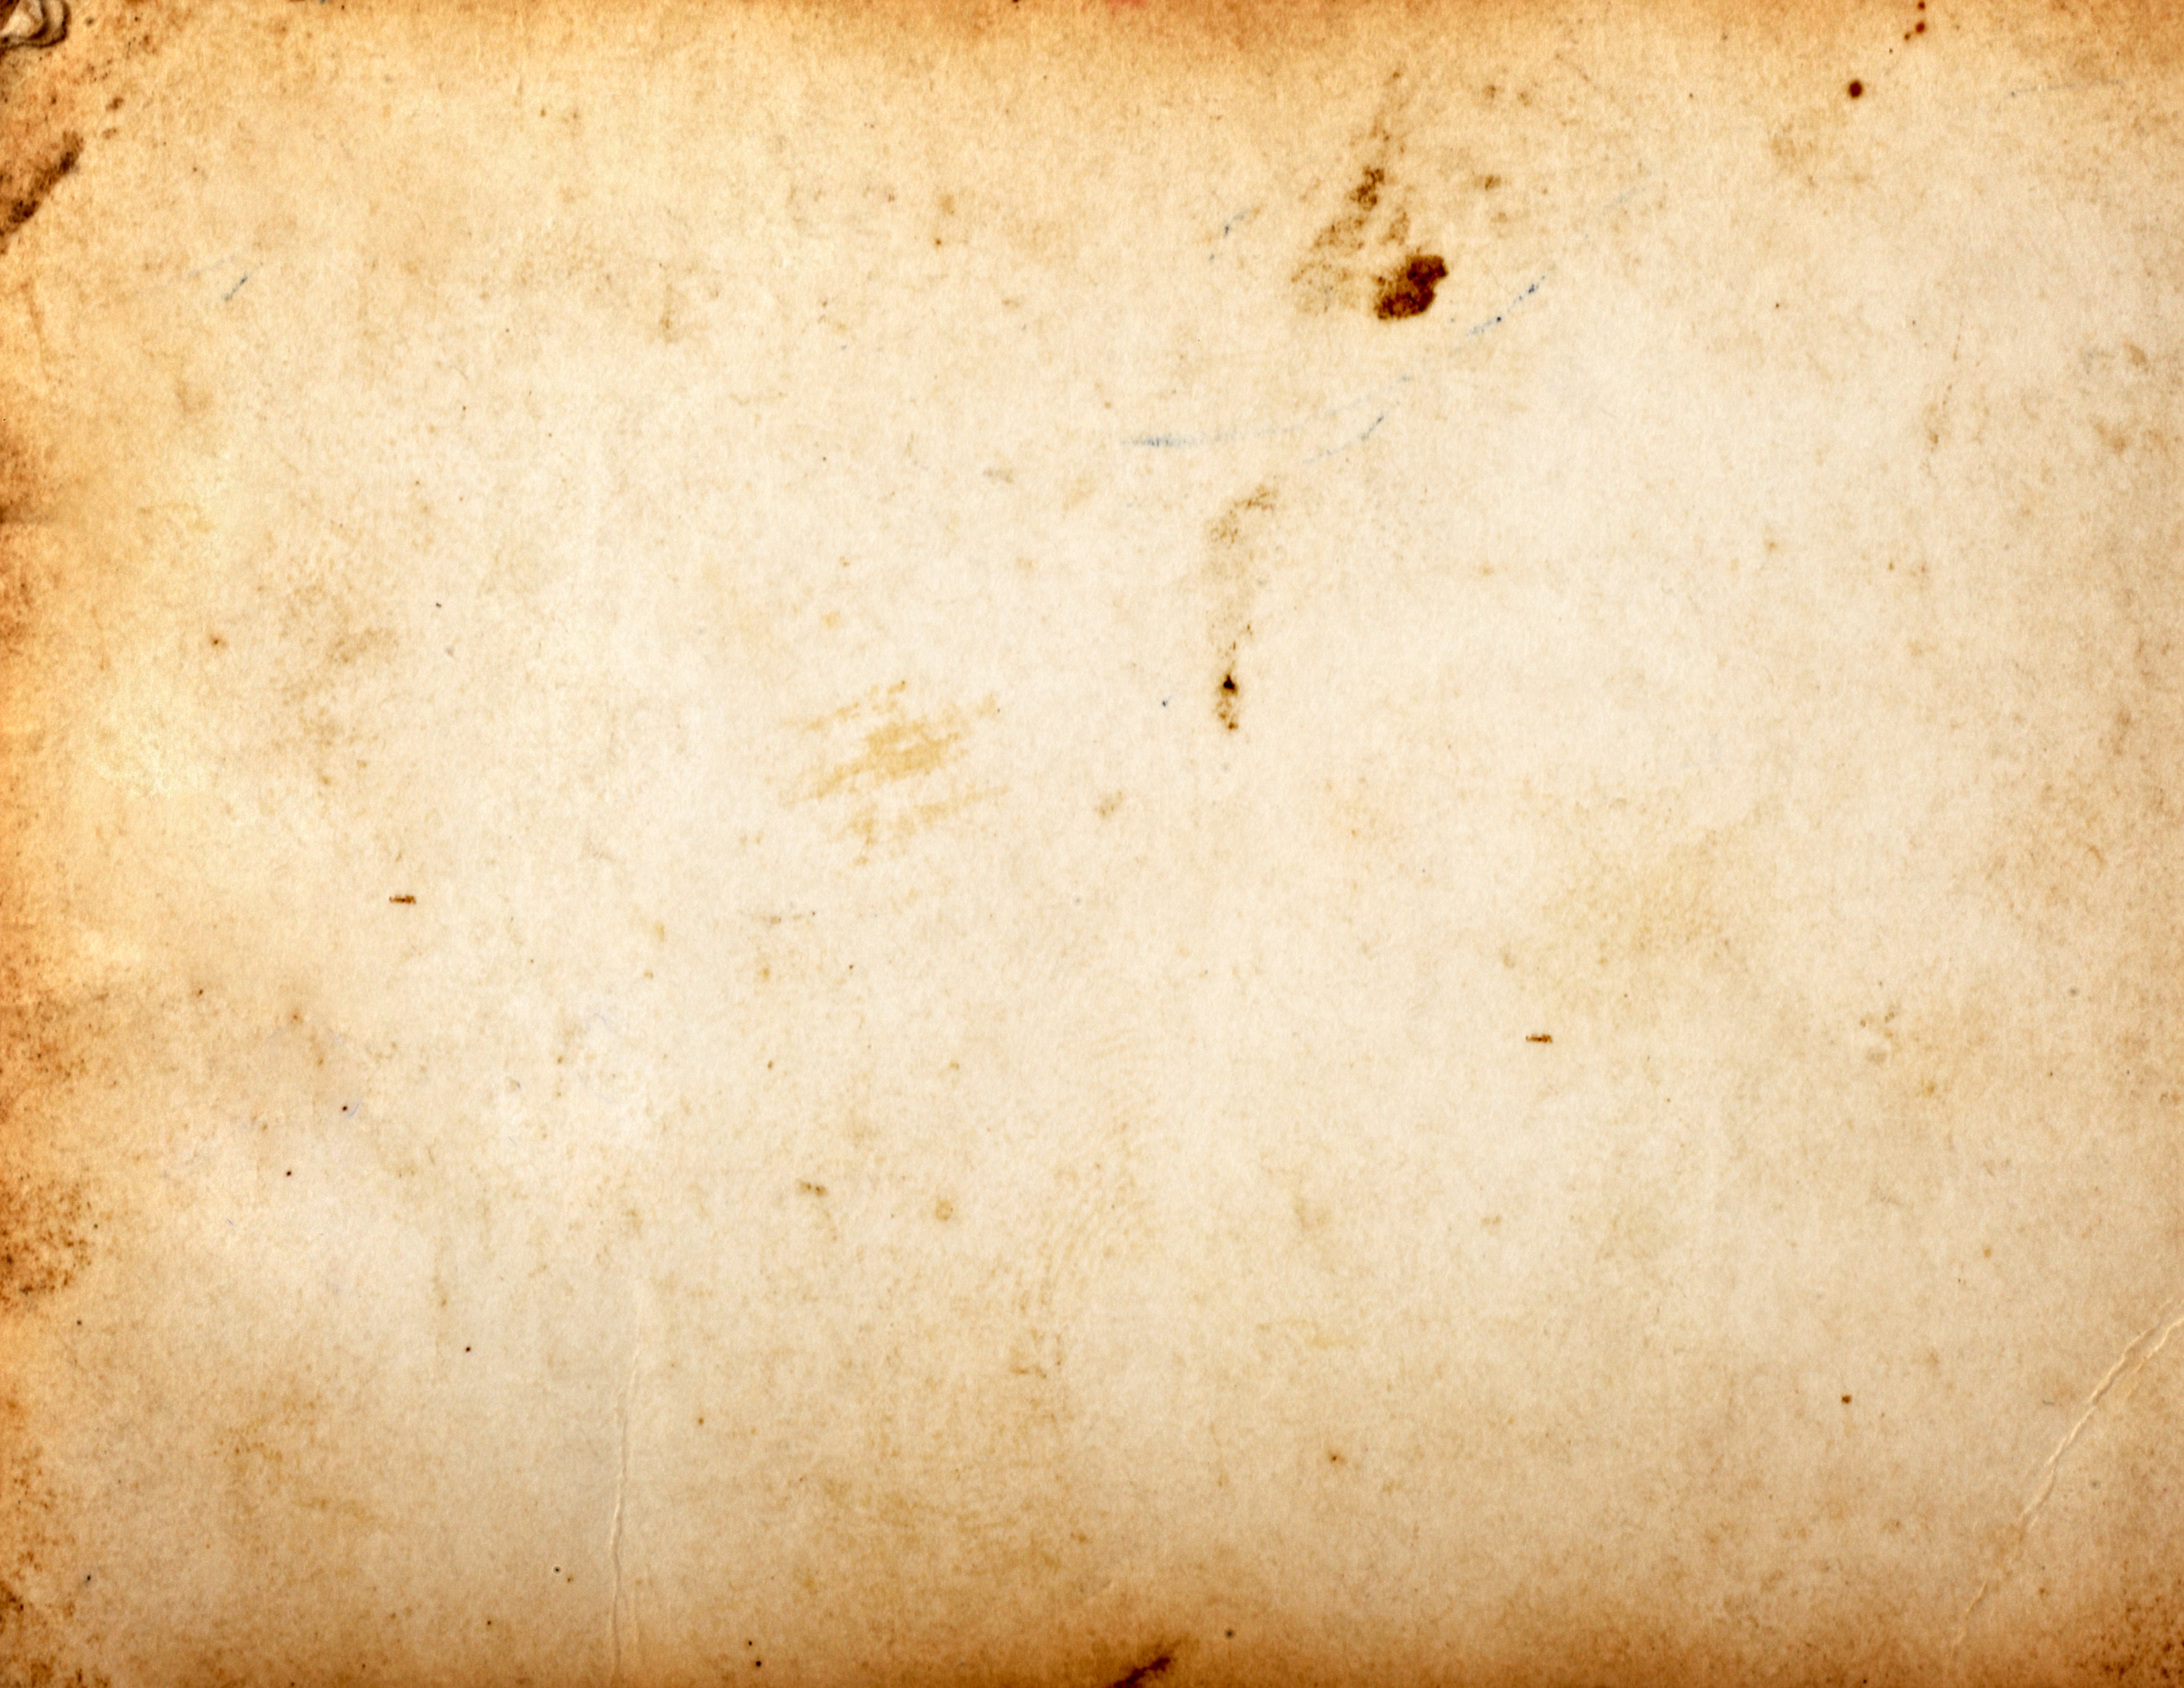 Western Leather Background HD Wallpapers on picsfaircom 3300x2550